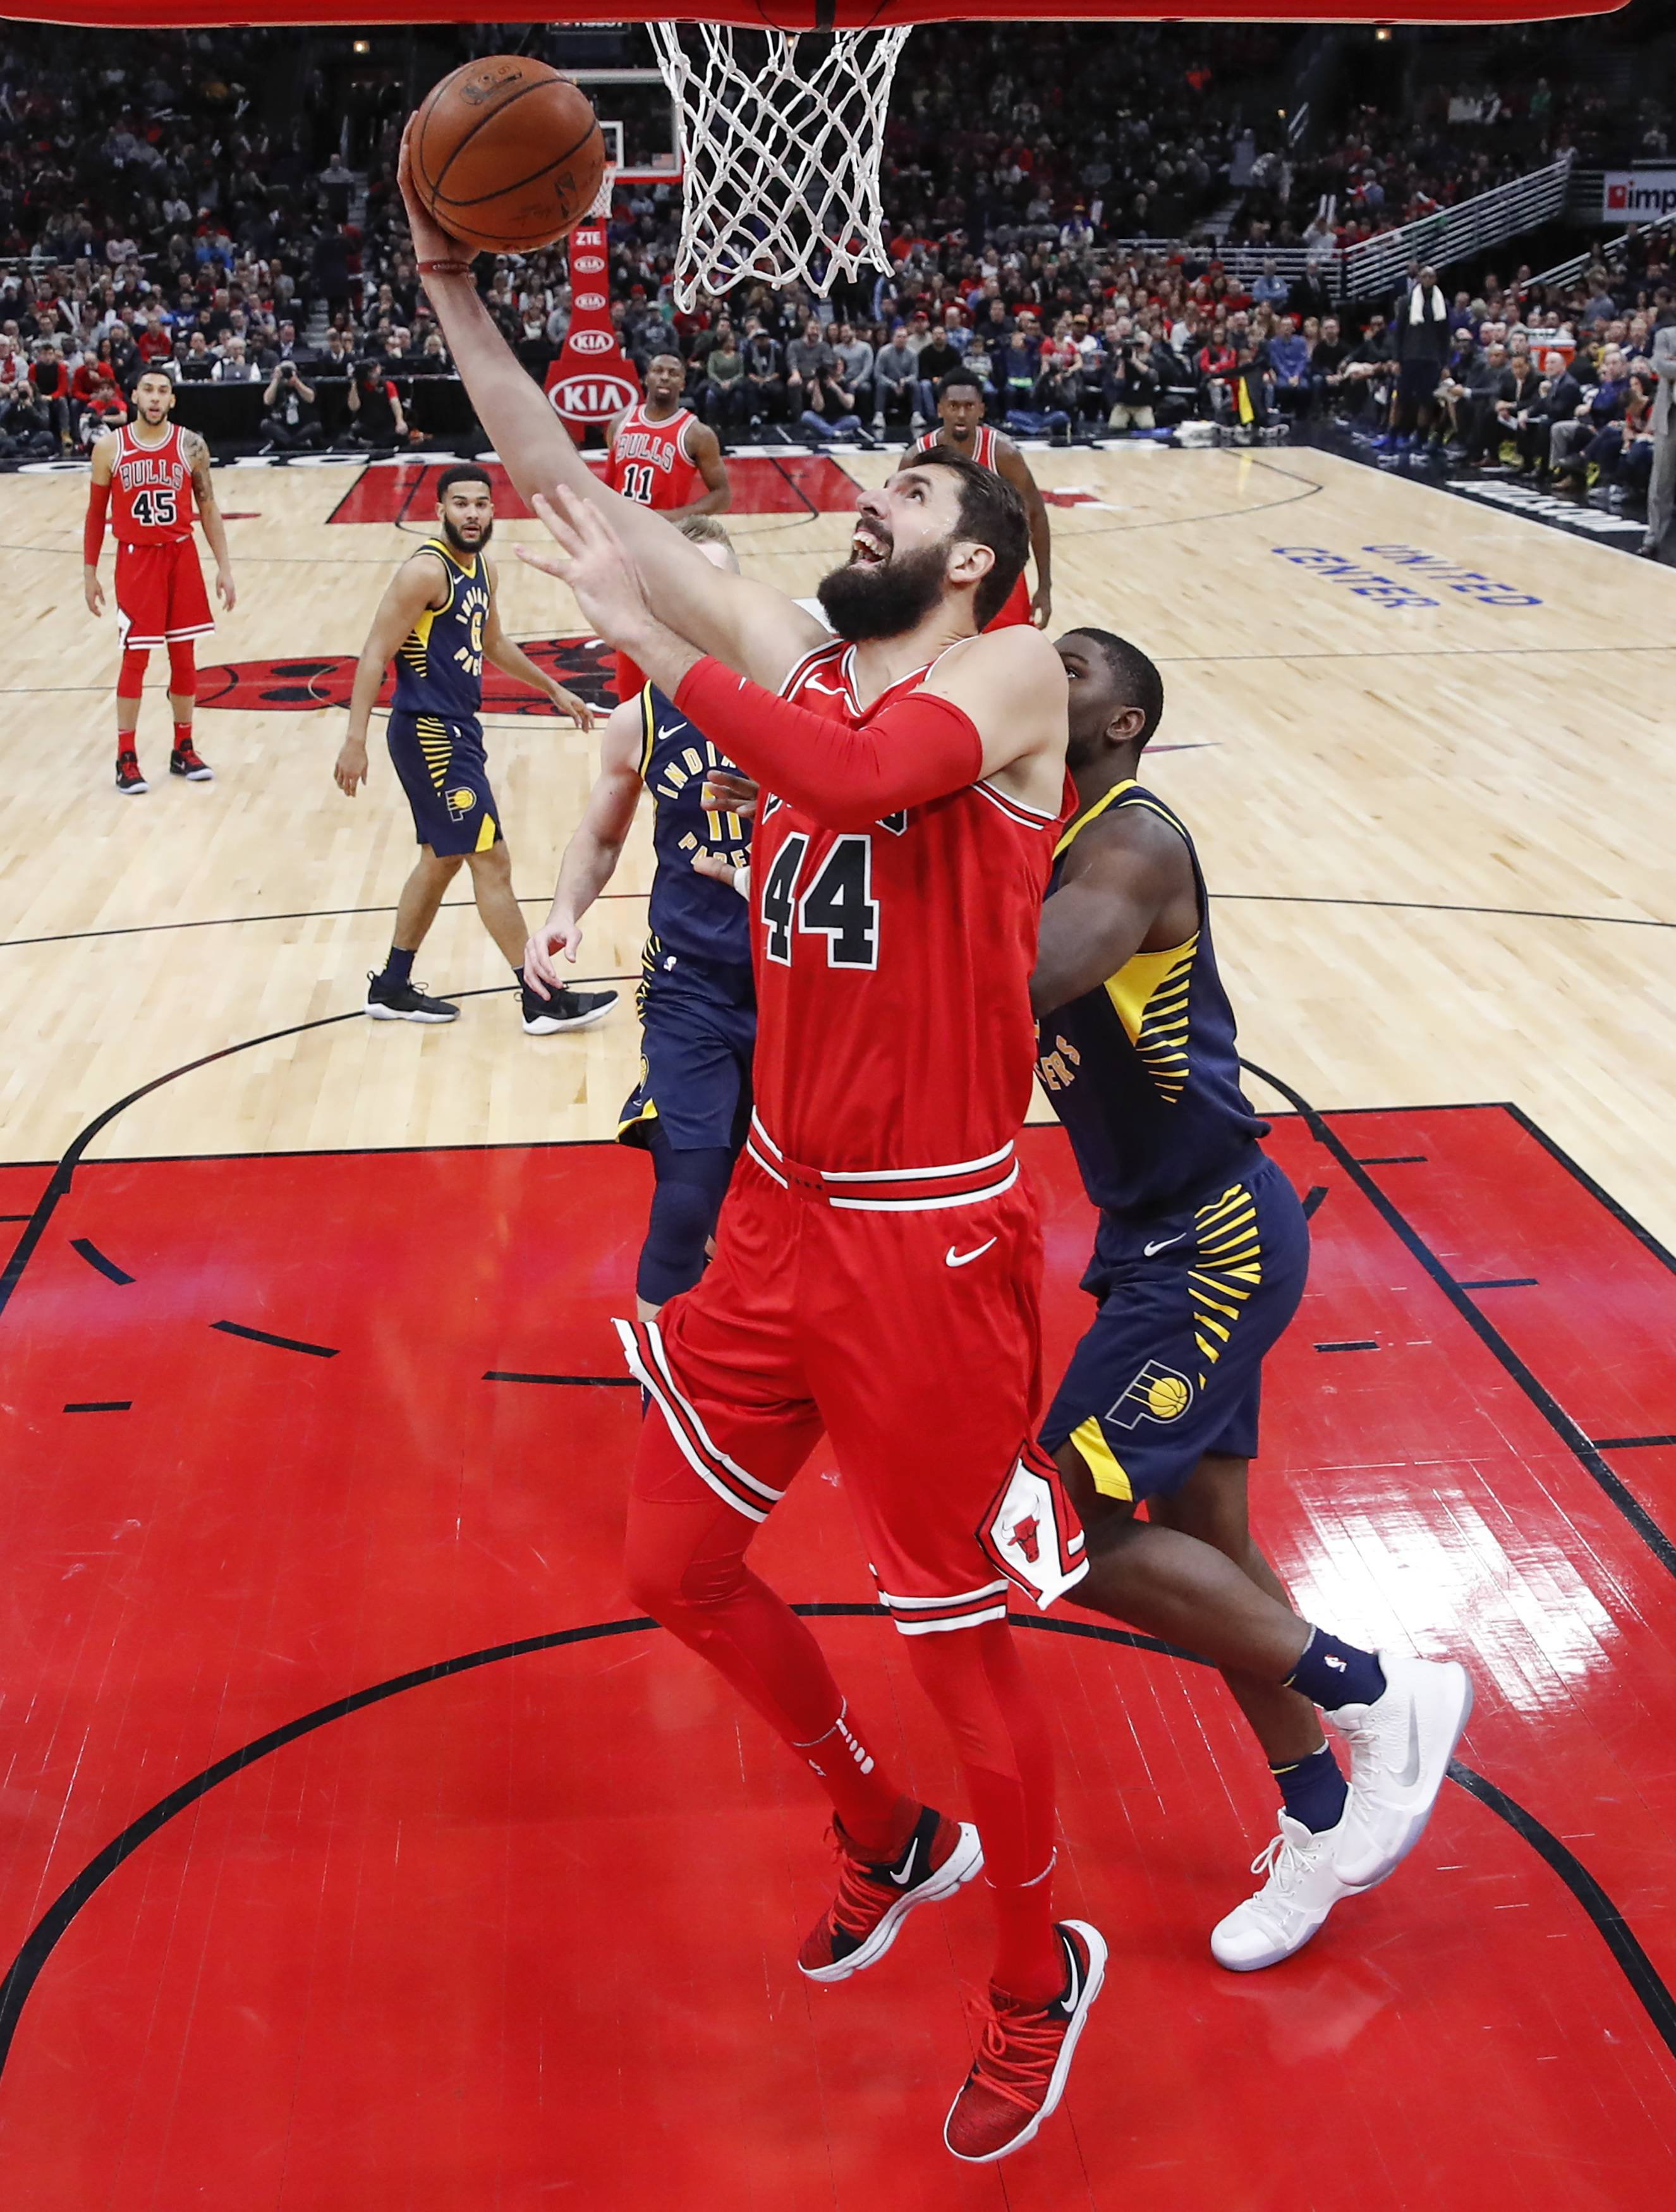 Chicago Bulls forward Nikola Mirotic, center, goes to the basket against Indiana Pacers forward Alex Poythress, right, during the first half of an NBA basketball game, Friday, Dec. 29, 2017, in Chicago.